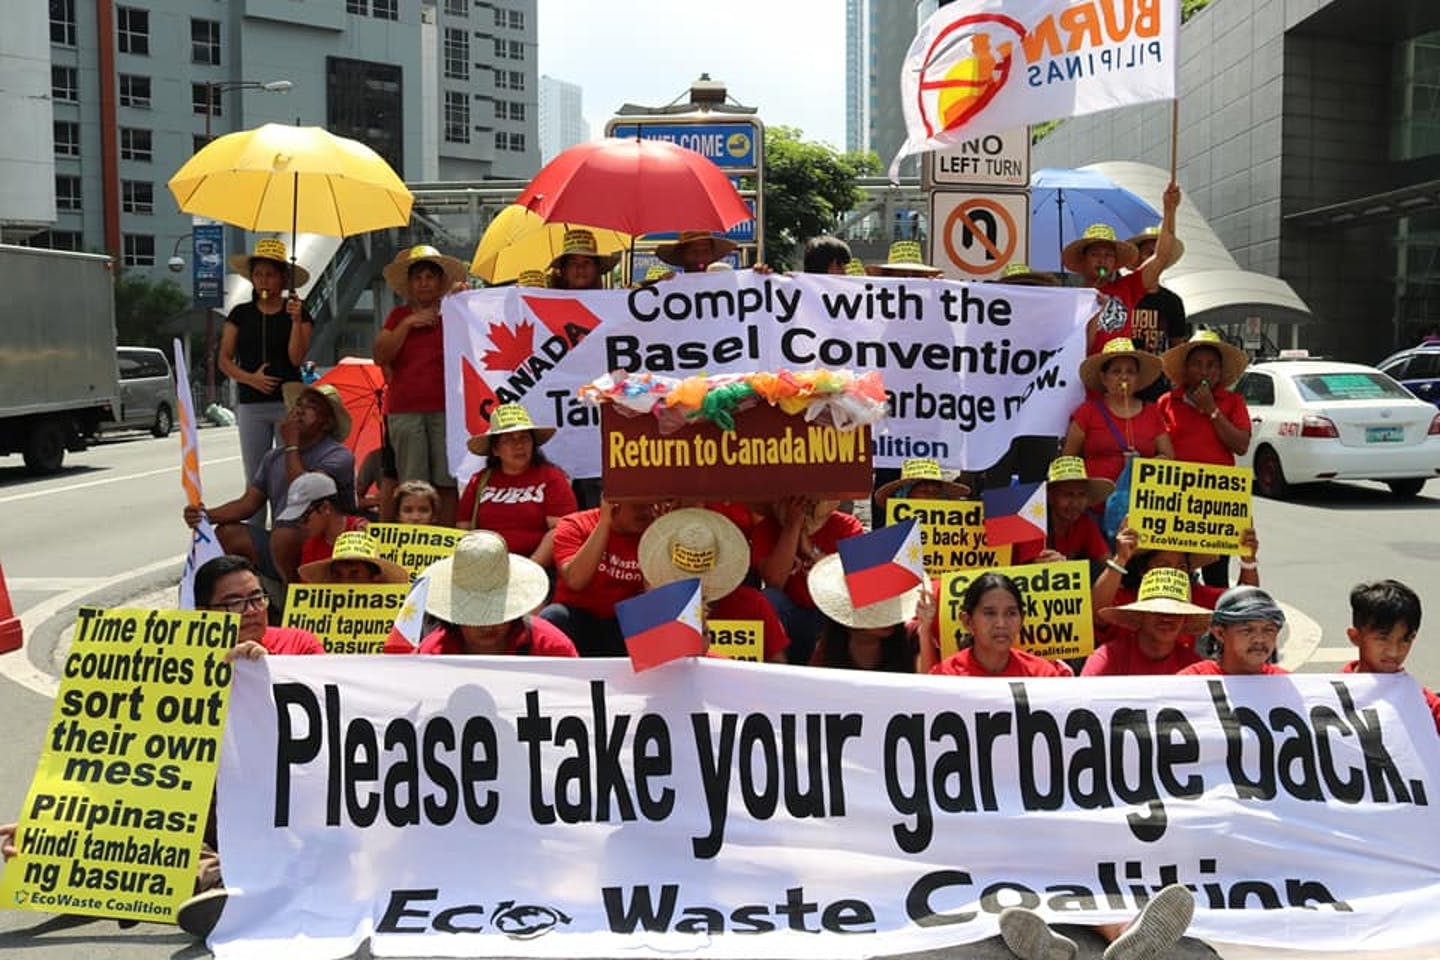 canada trash protests outside embassy in the philippines